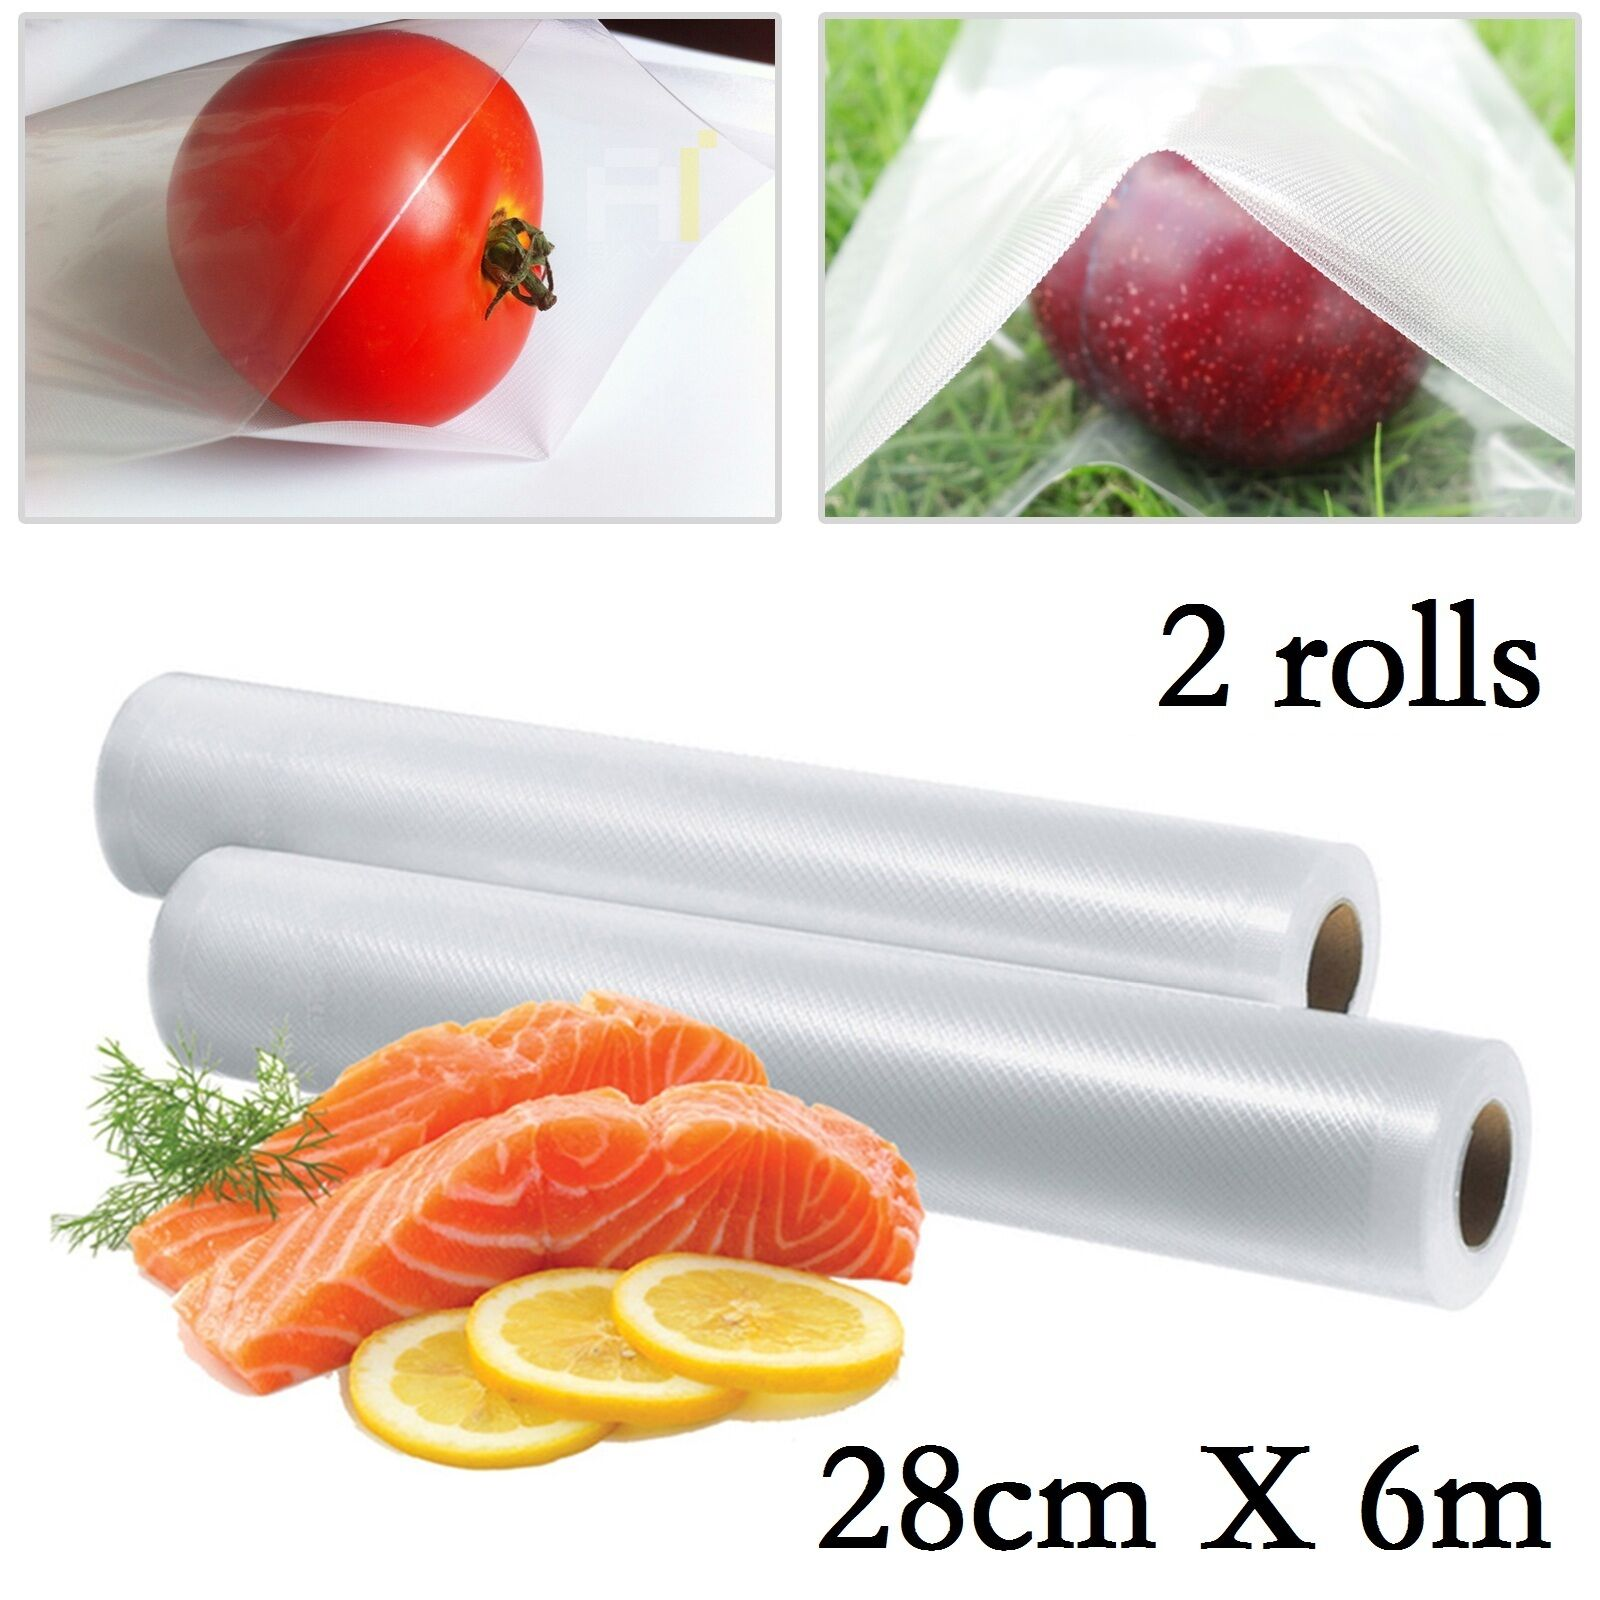 2 Rolls 28CM X 12M Cheapest Tetured Vacuum Sous Vide Food Sealer Storage Bags2 Rolls 28CM X 12M Cheapest Tetured Vacuum Sous Vide Food Sealer Storage Bags